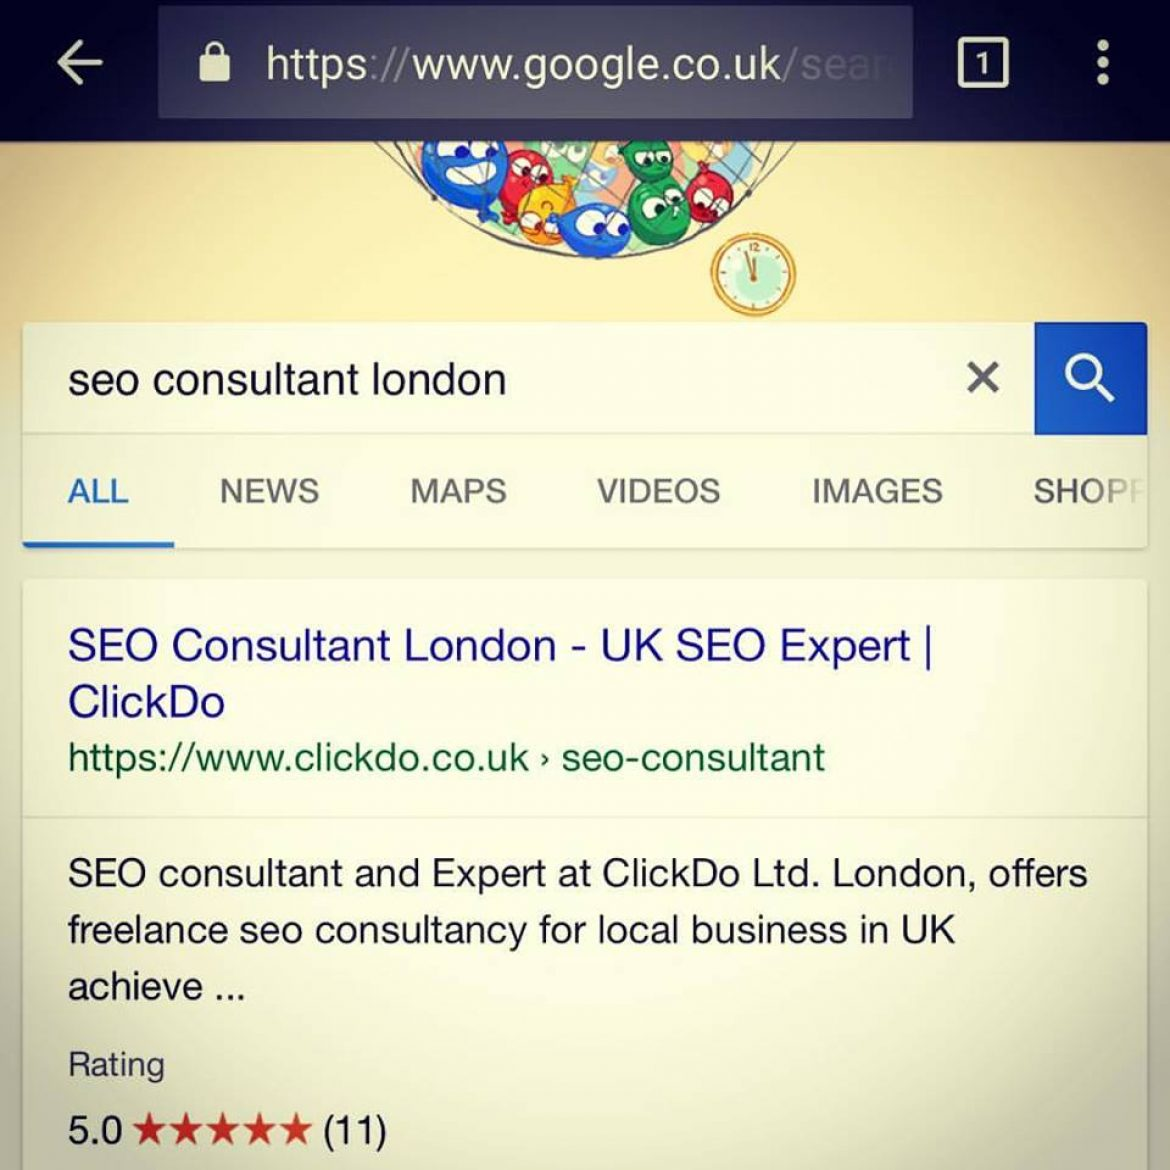 How SEO Experts can benefit in 2017